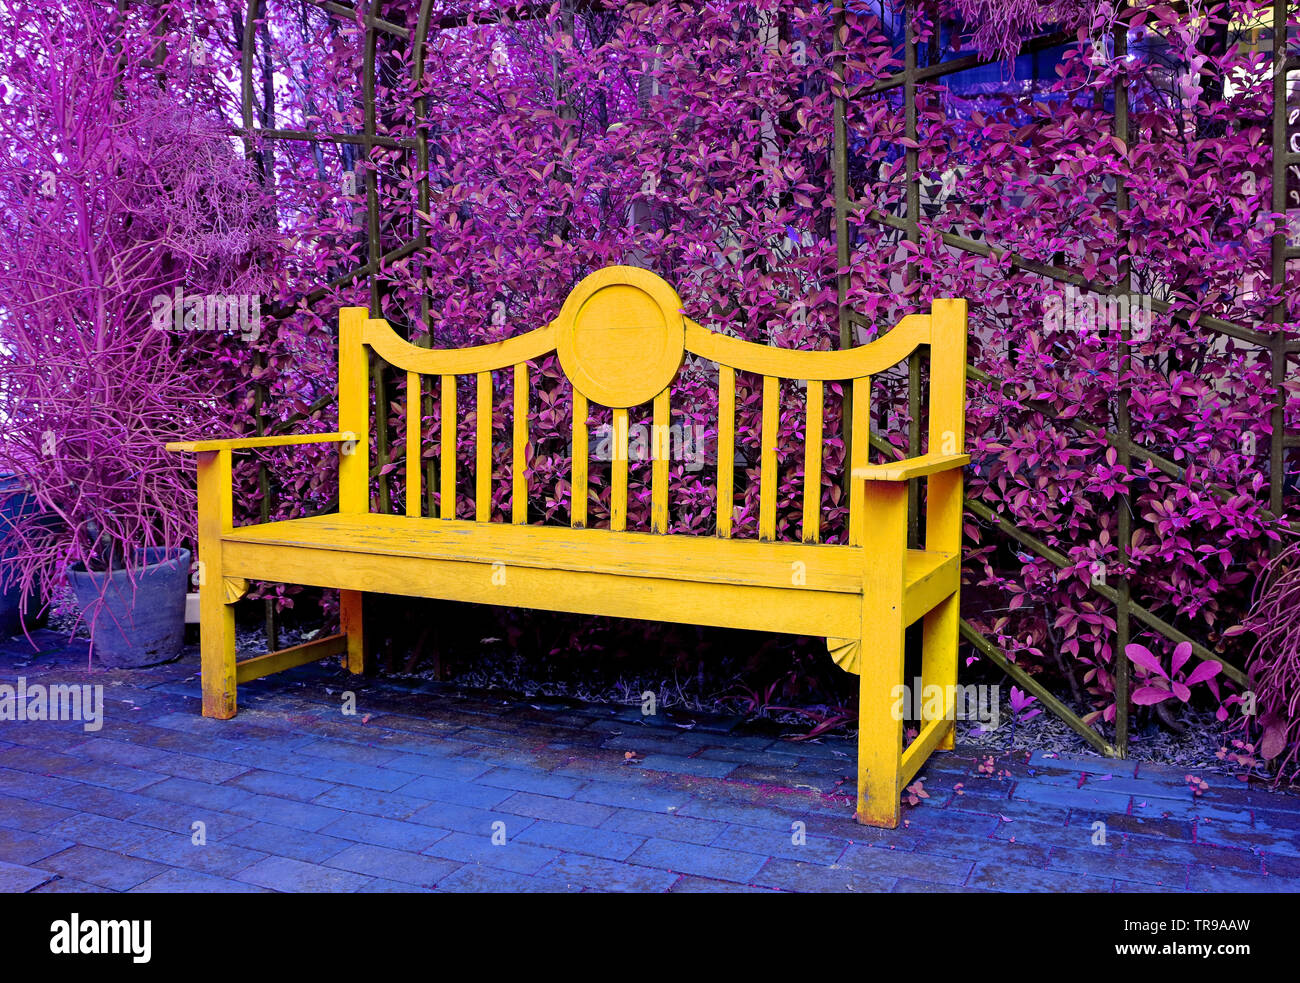 Stupendous Surreal Pop Art Style Yellow Wooden Bench In Purple Colored Ncnpc Chair Design For Home Ncnpcorg